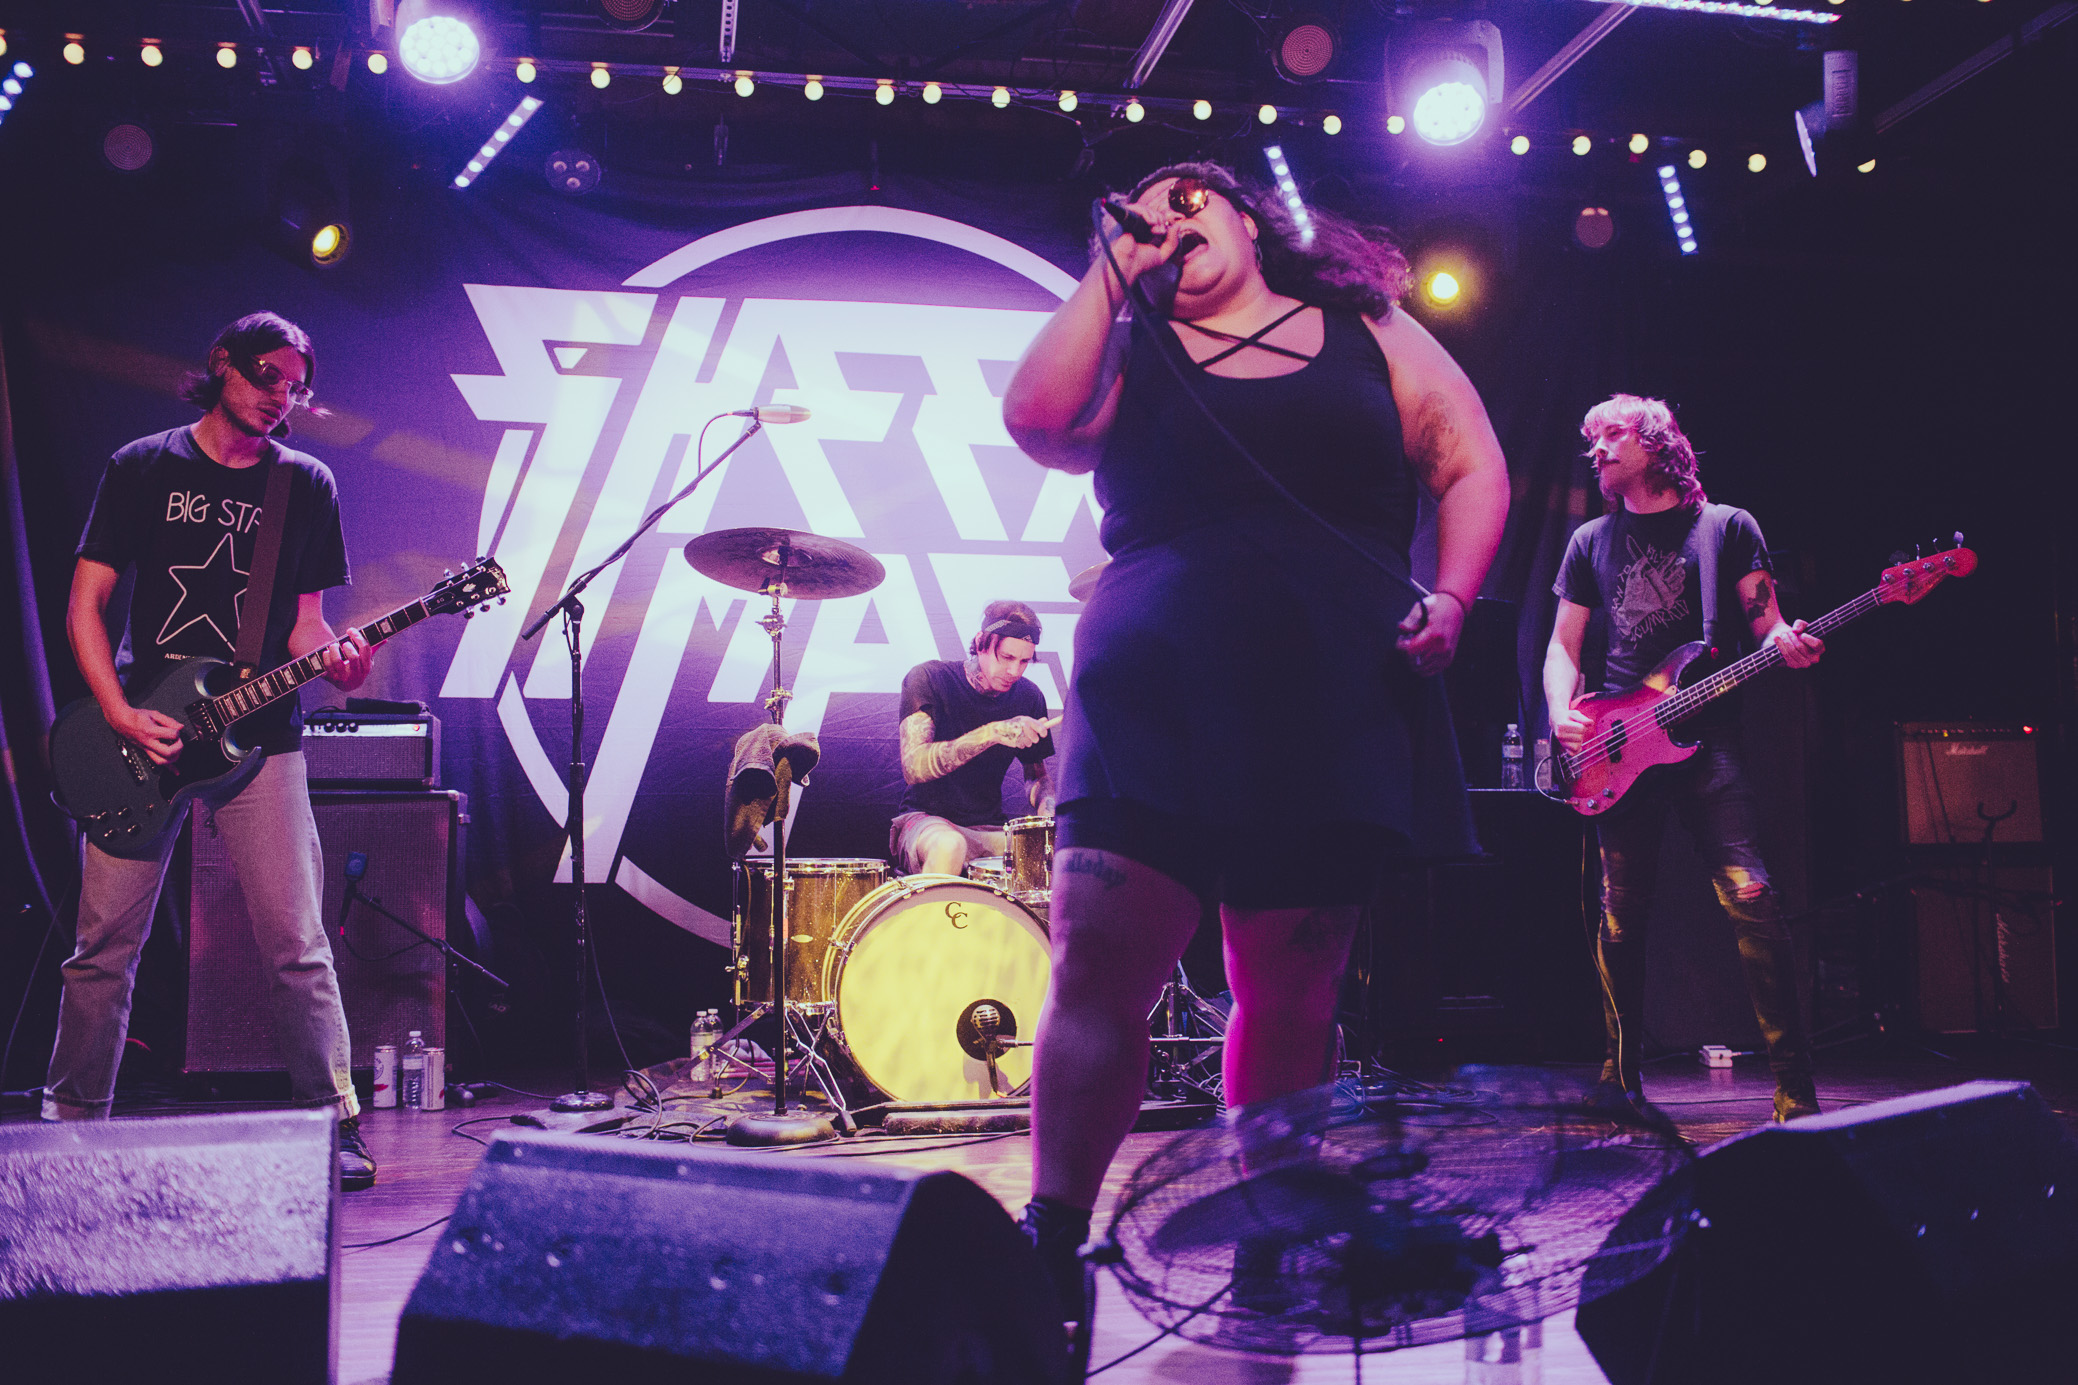 Sheer Mag performs in concert at Saturn Birmingham in Birmingham, Alabama on October 1st, 2019. (Photo by David A. Smith / DSmithScenes)